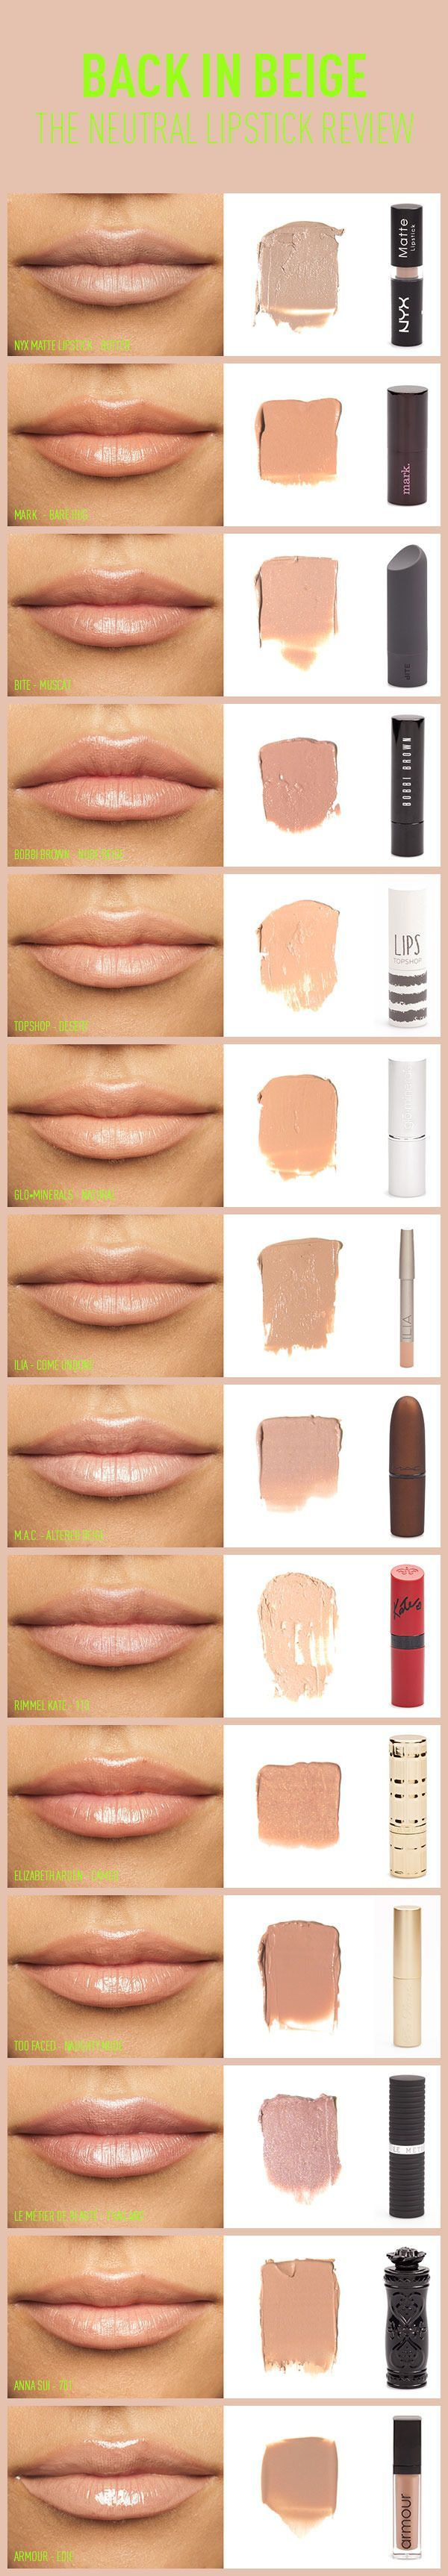 Back In Beige: The Neutral Lipstick Review | Beautylish- i want the NYX butter shade!!!